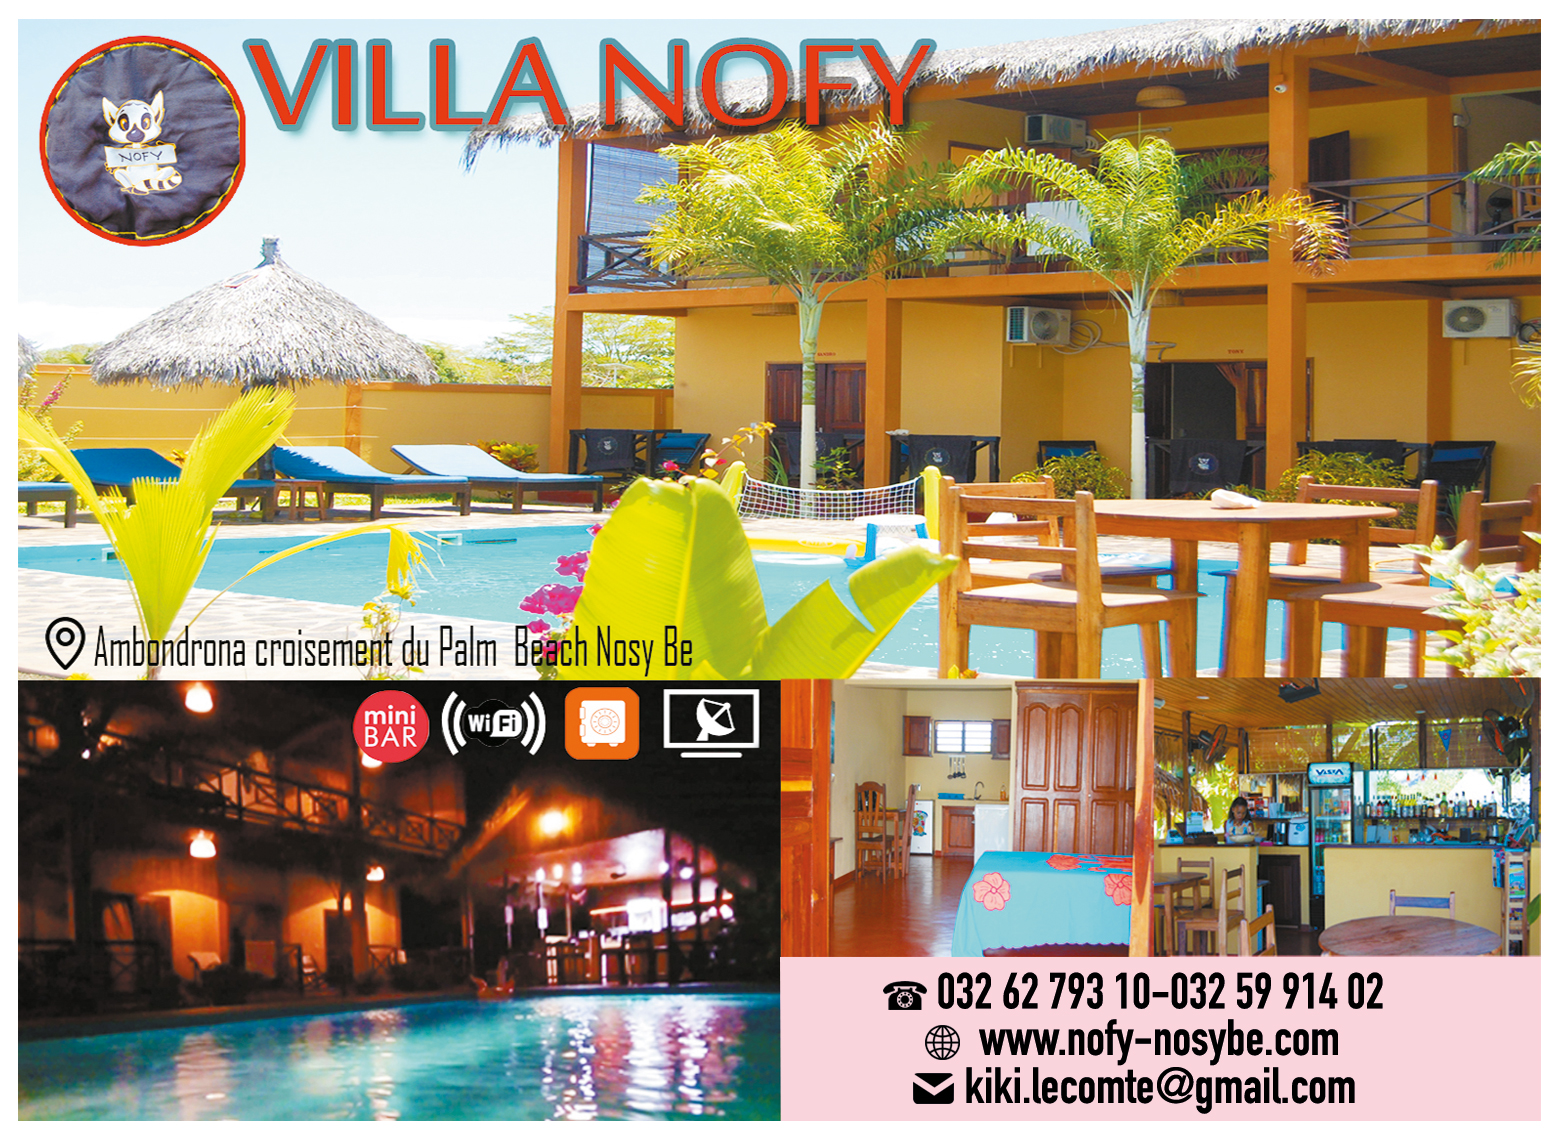 VILLA NOFY |mianjaiaka communication